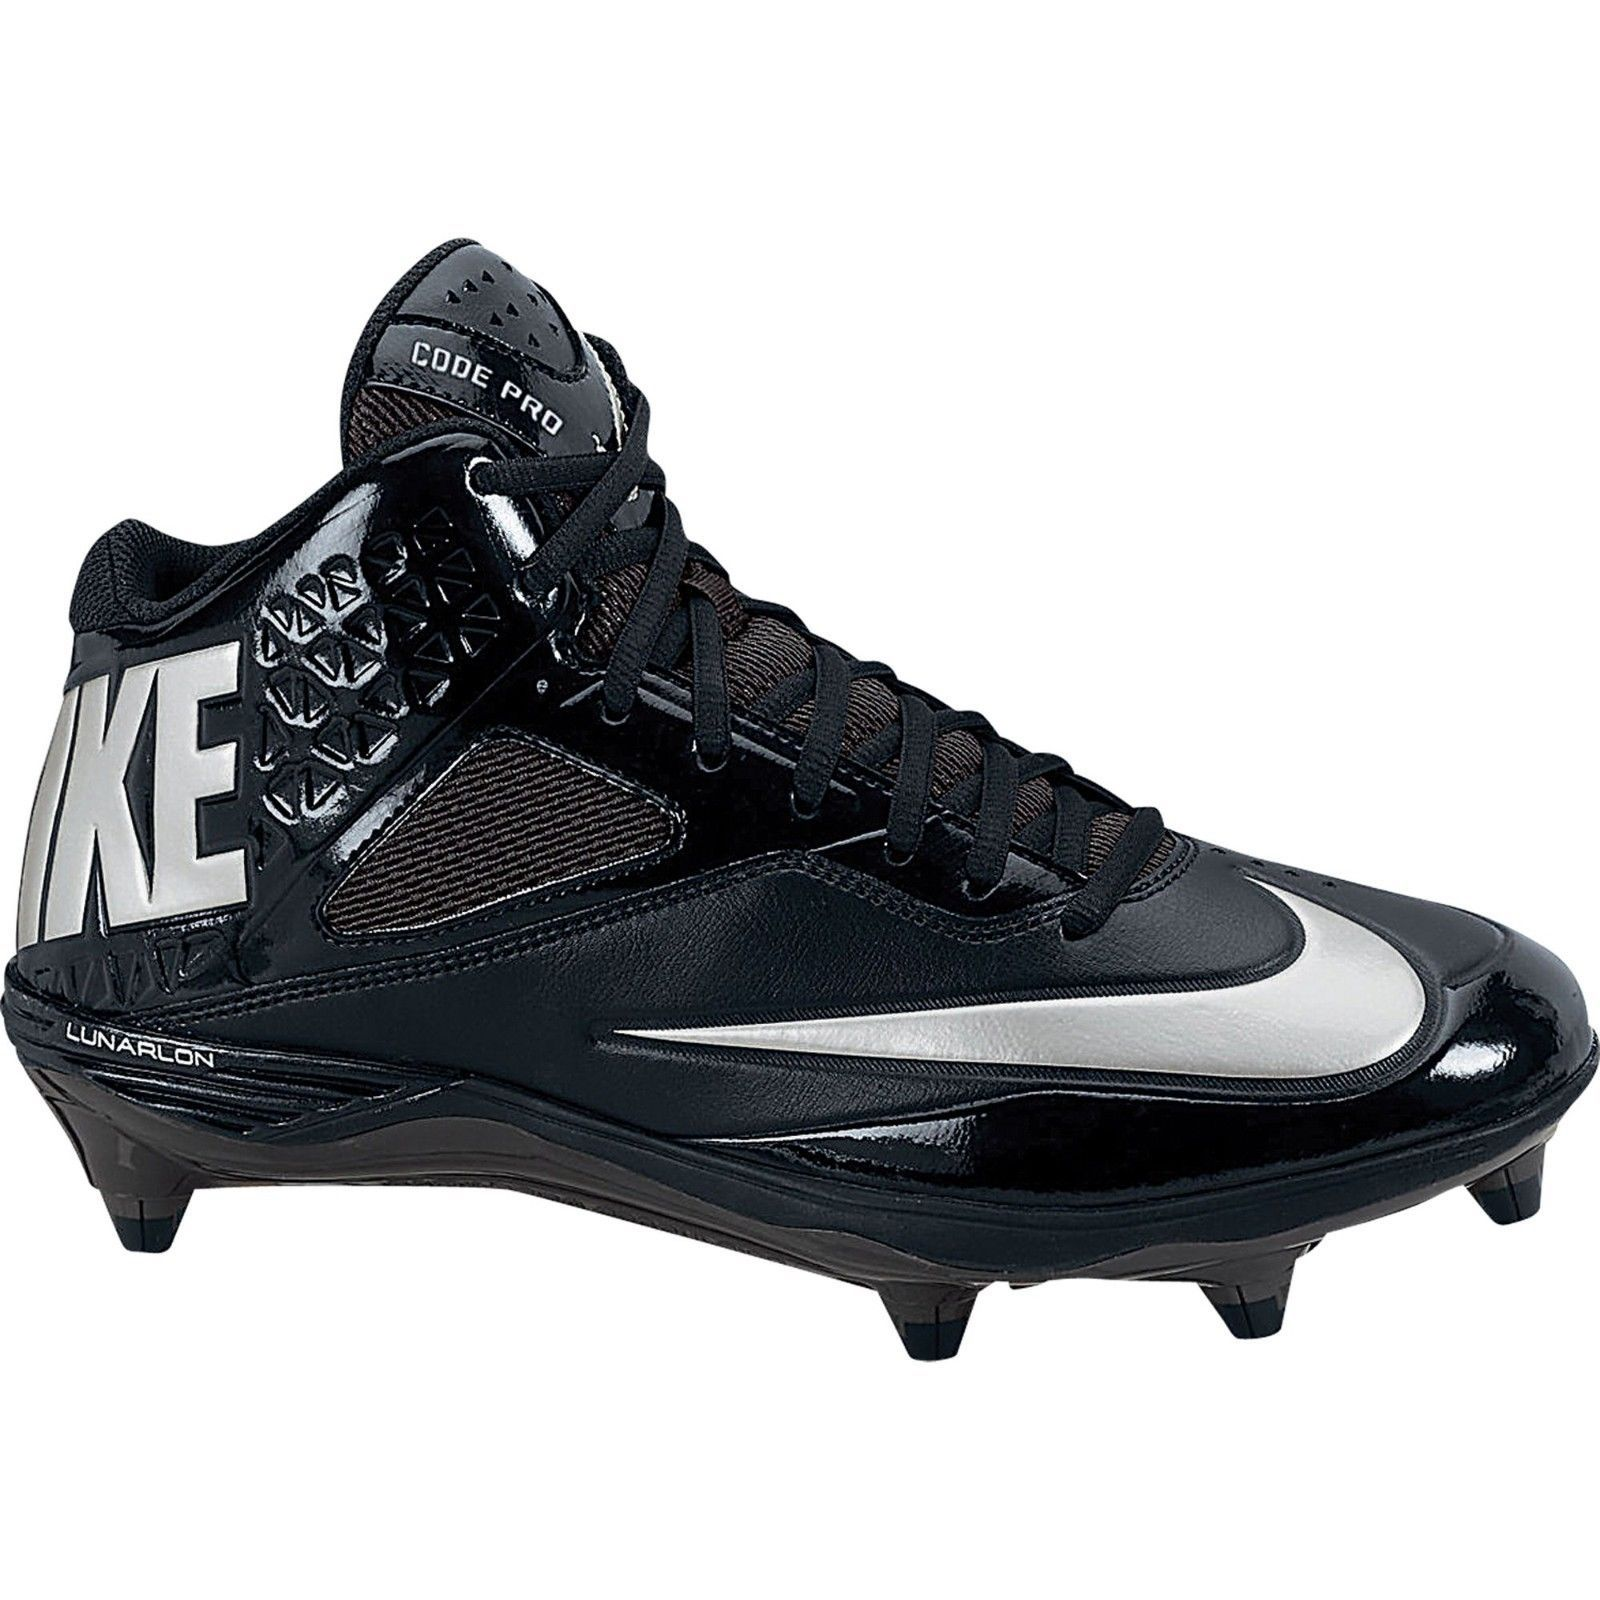 Primary image for Nike Men's Lunar Code Pro 3/4 Detach Football Cleats, 579668 002 Sizes 10-12 Blk